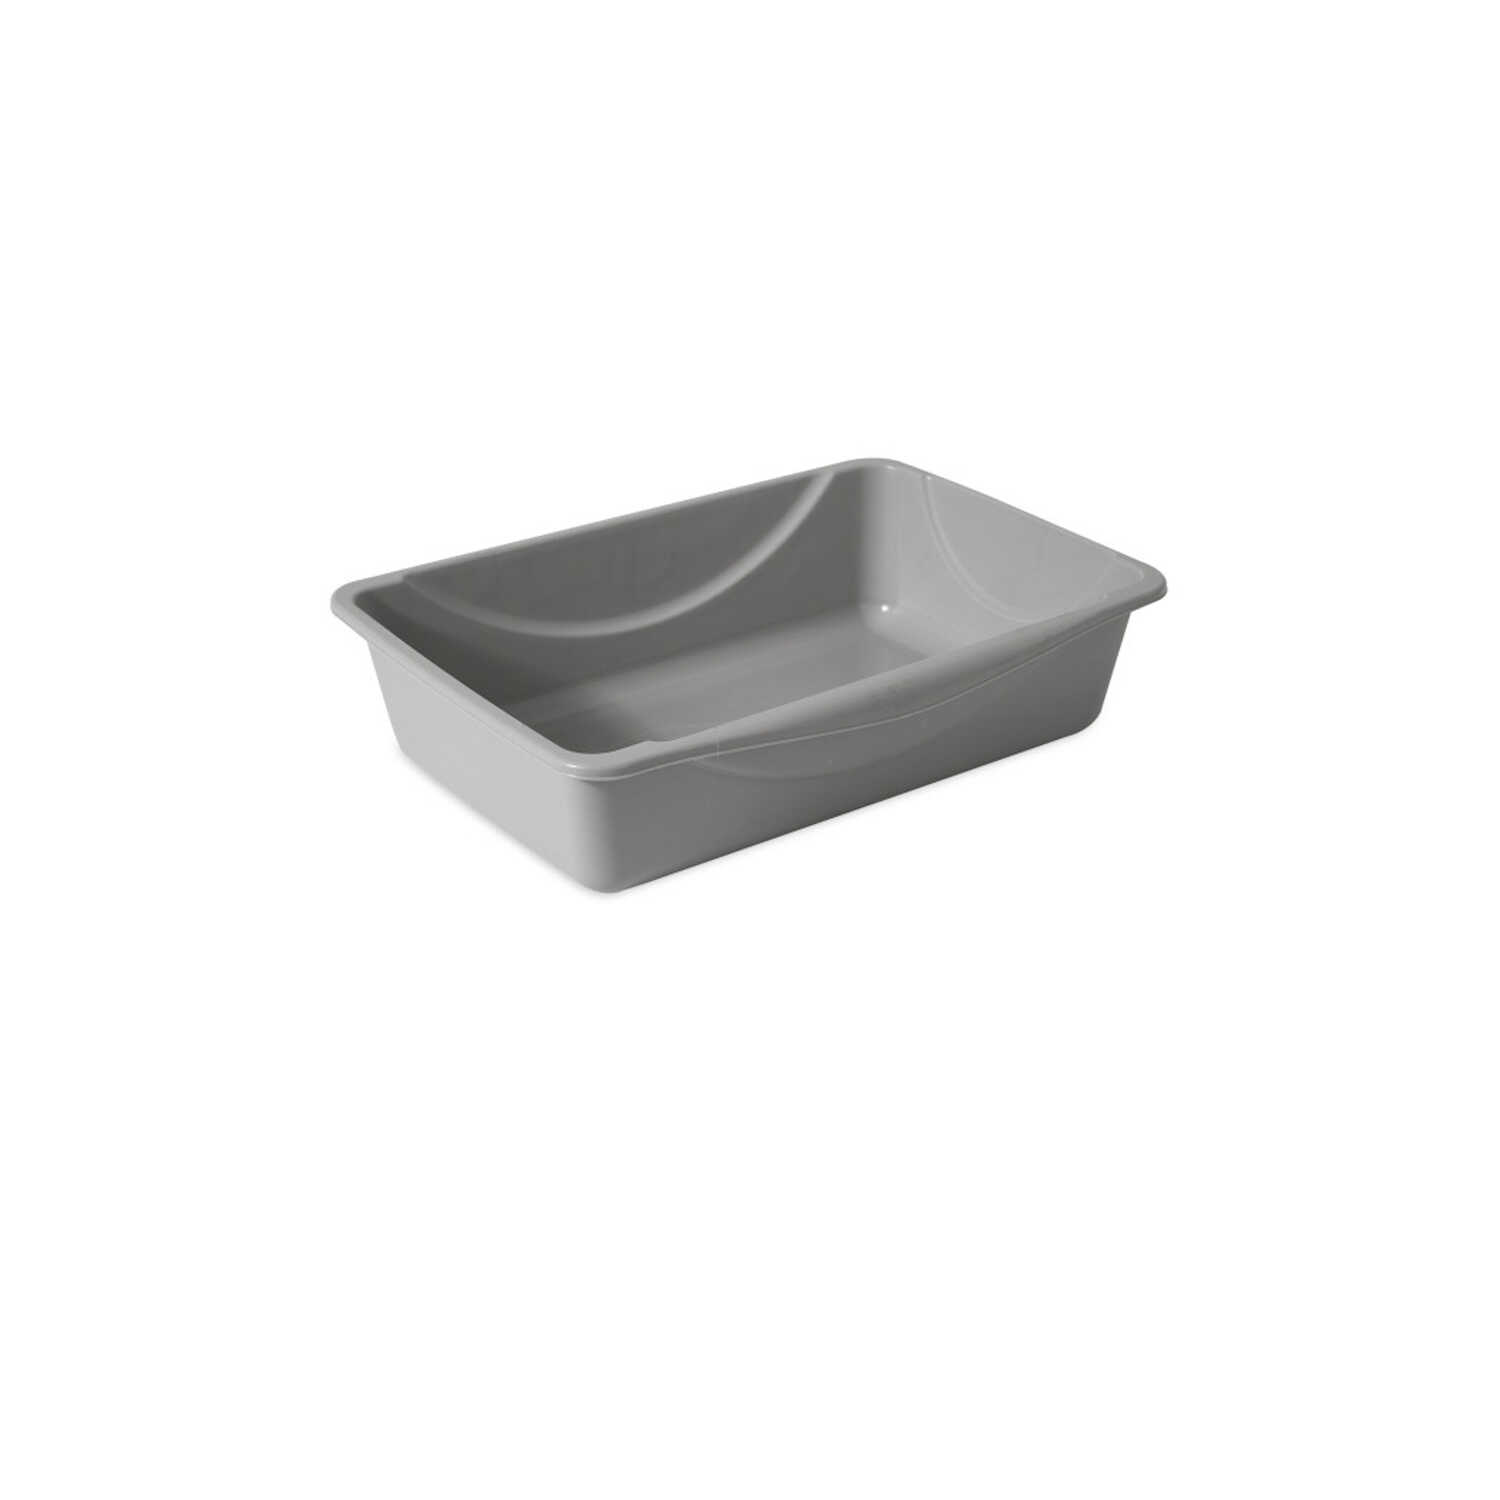 Petmate  Plastic  Gray  Litter Box  1 pk